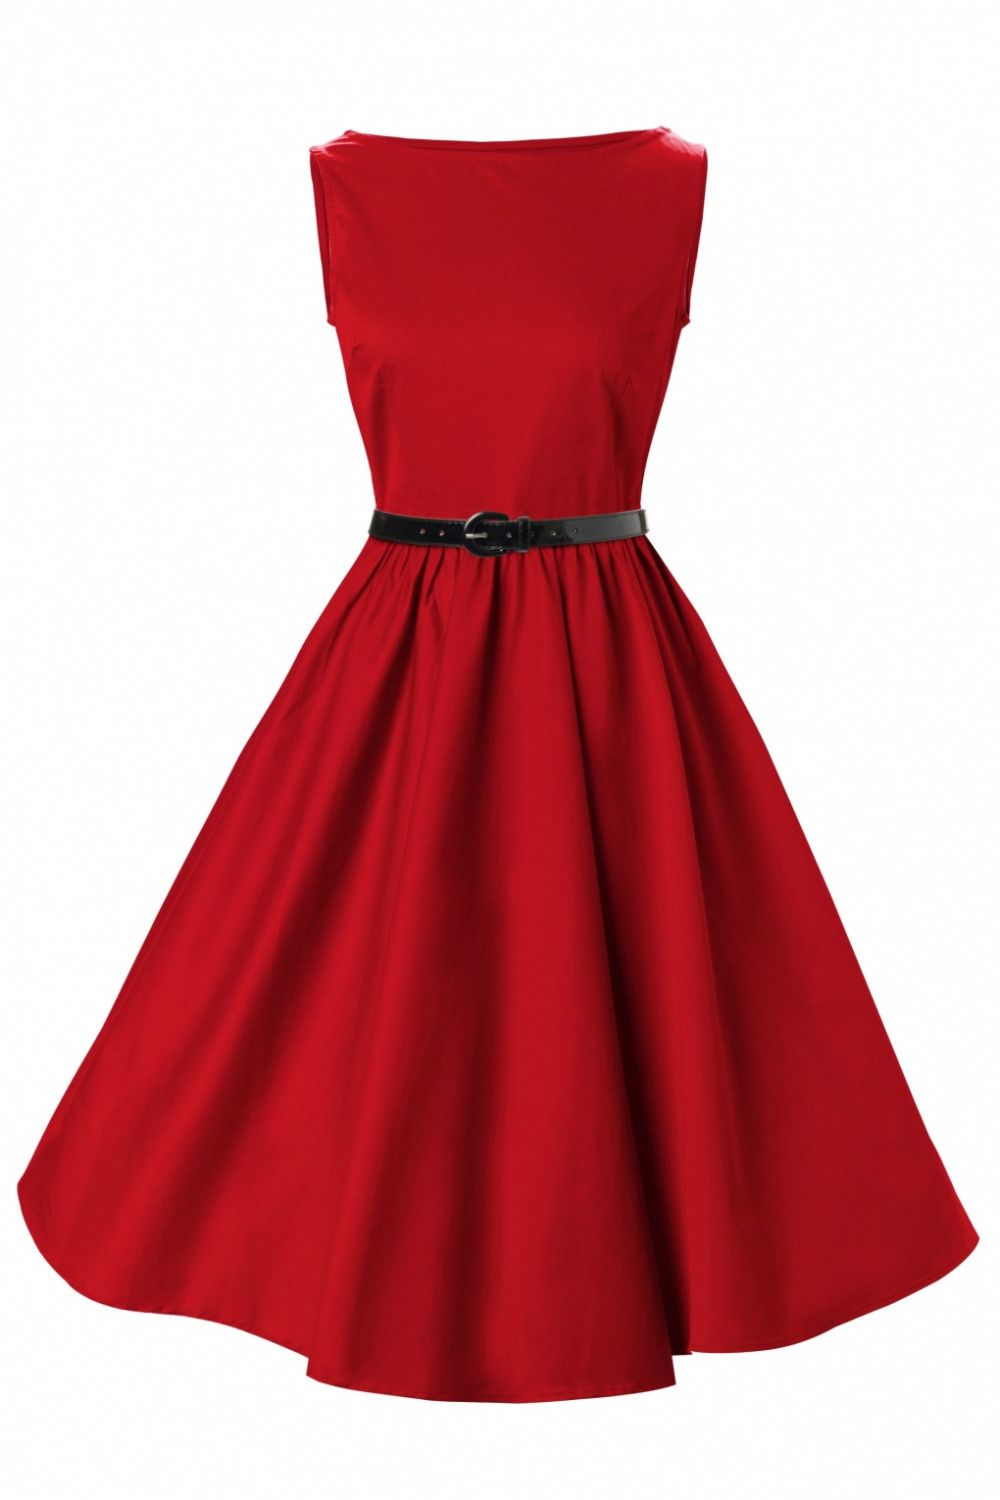 4e4cbd2356d Free Shipping XXXL big size swing dance dresses full circle skirt woman s  long dress large party 50s style vestidos sexy red-in Dresses from.